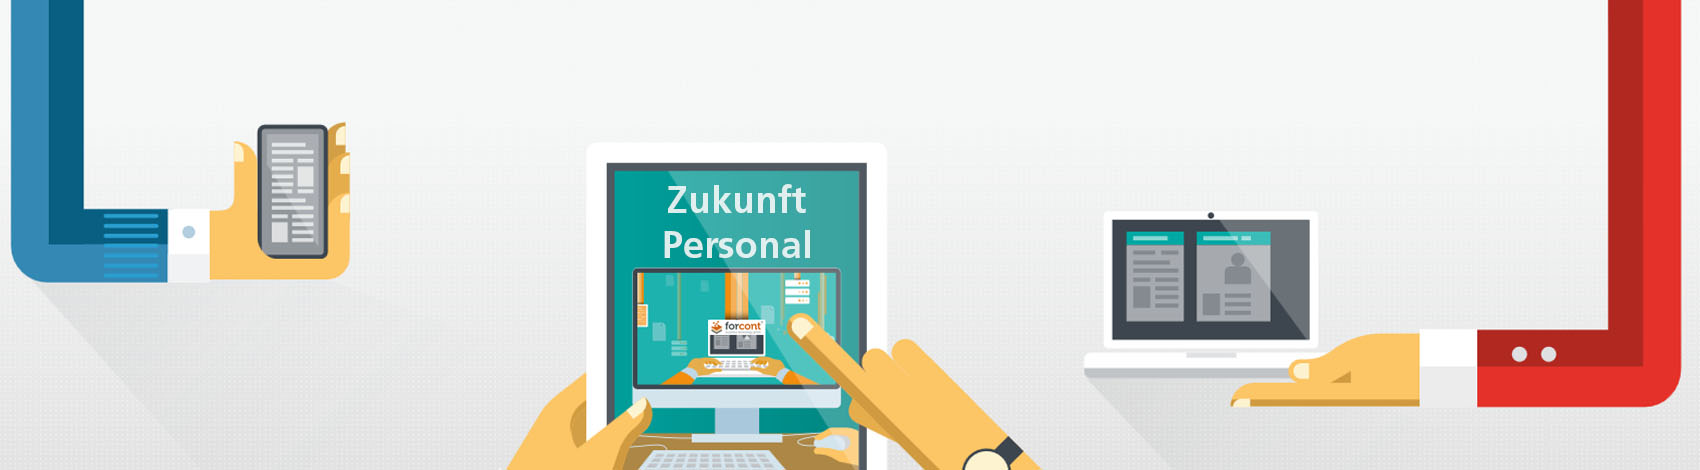 forcont Messe Zukunft Personal